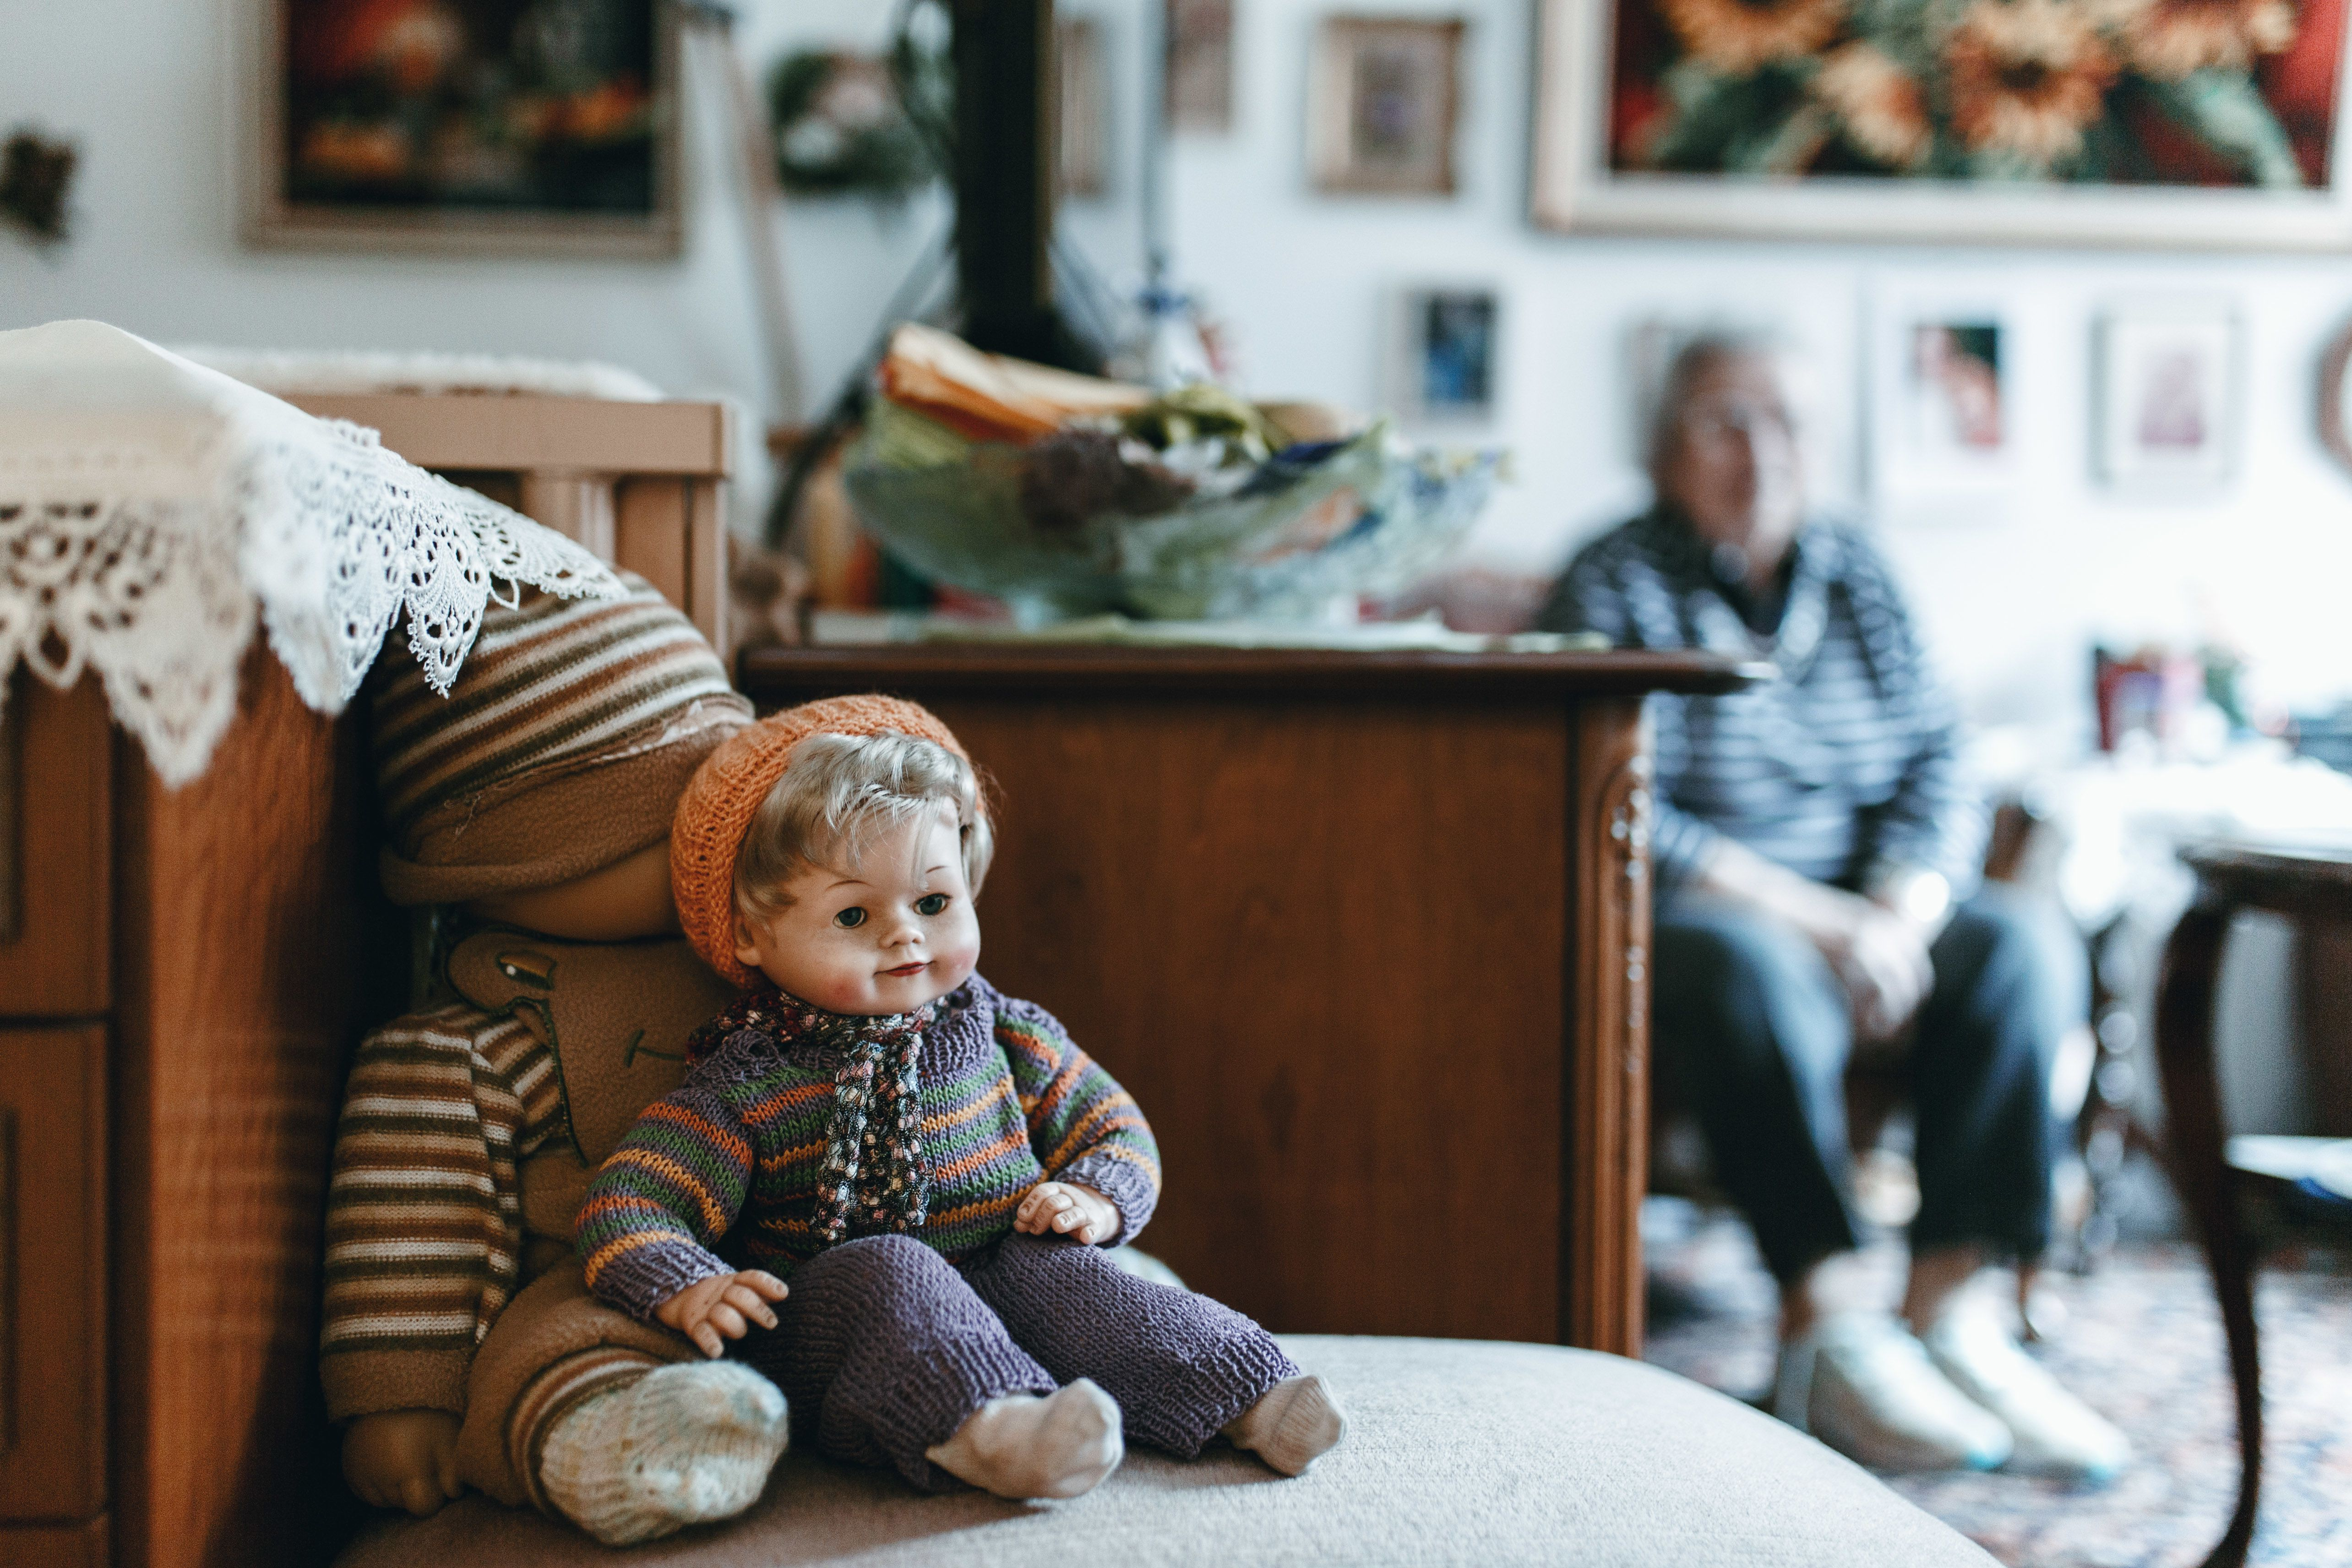 Toys On Seat With Person Sitting In Background At Home